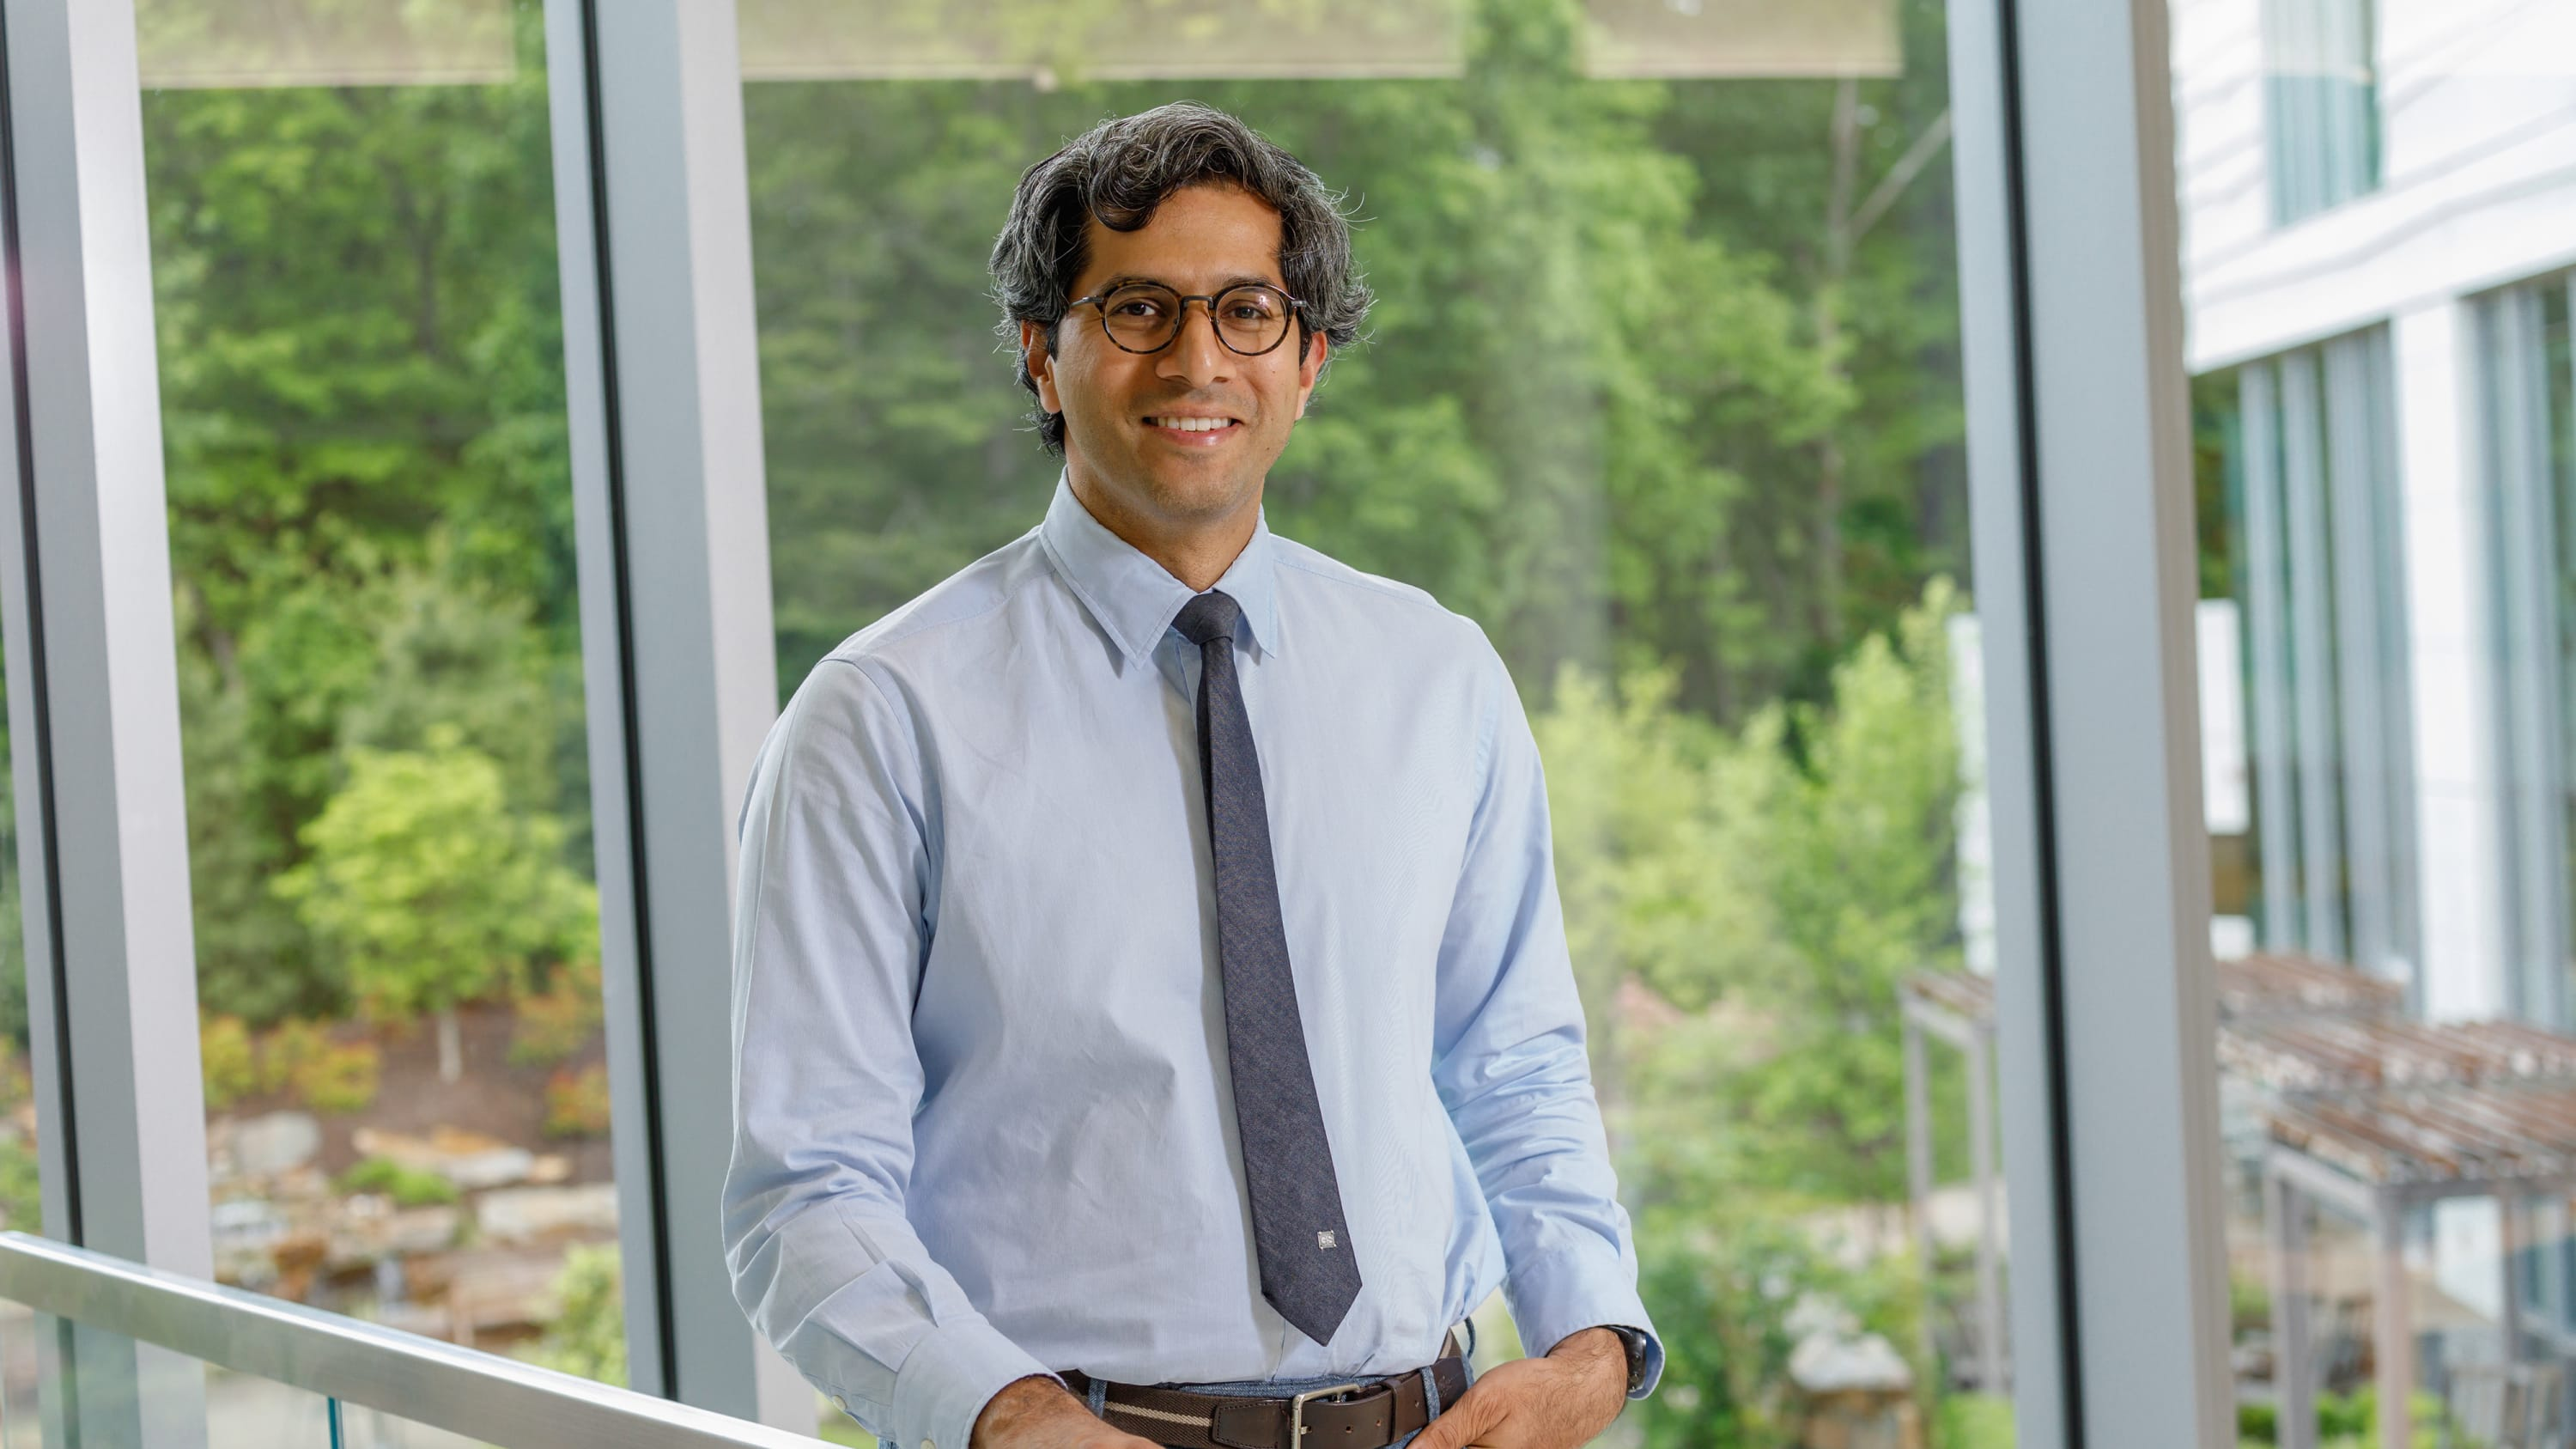 Vikram Reddy, MD, PhD, discusses the uptick of colorectal cancer in younger patients